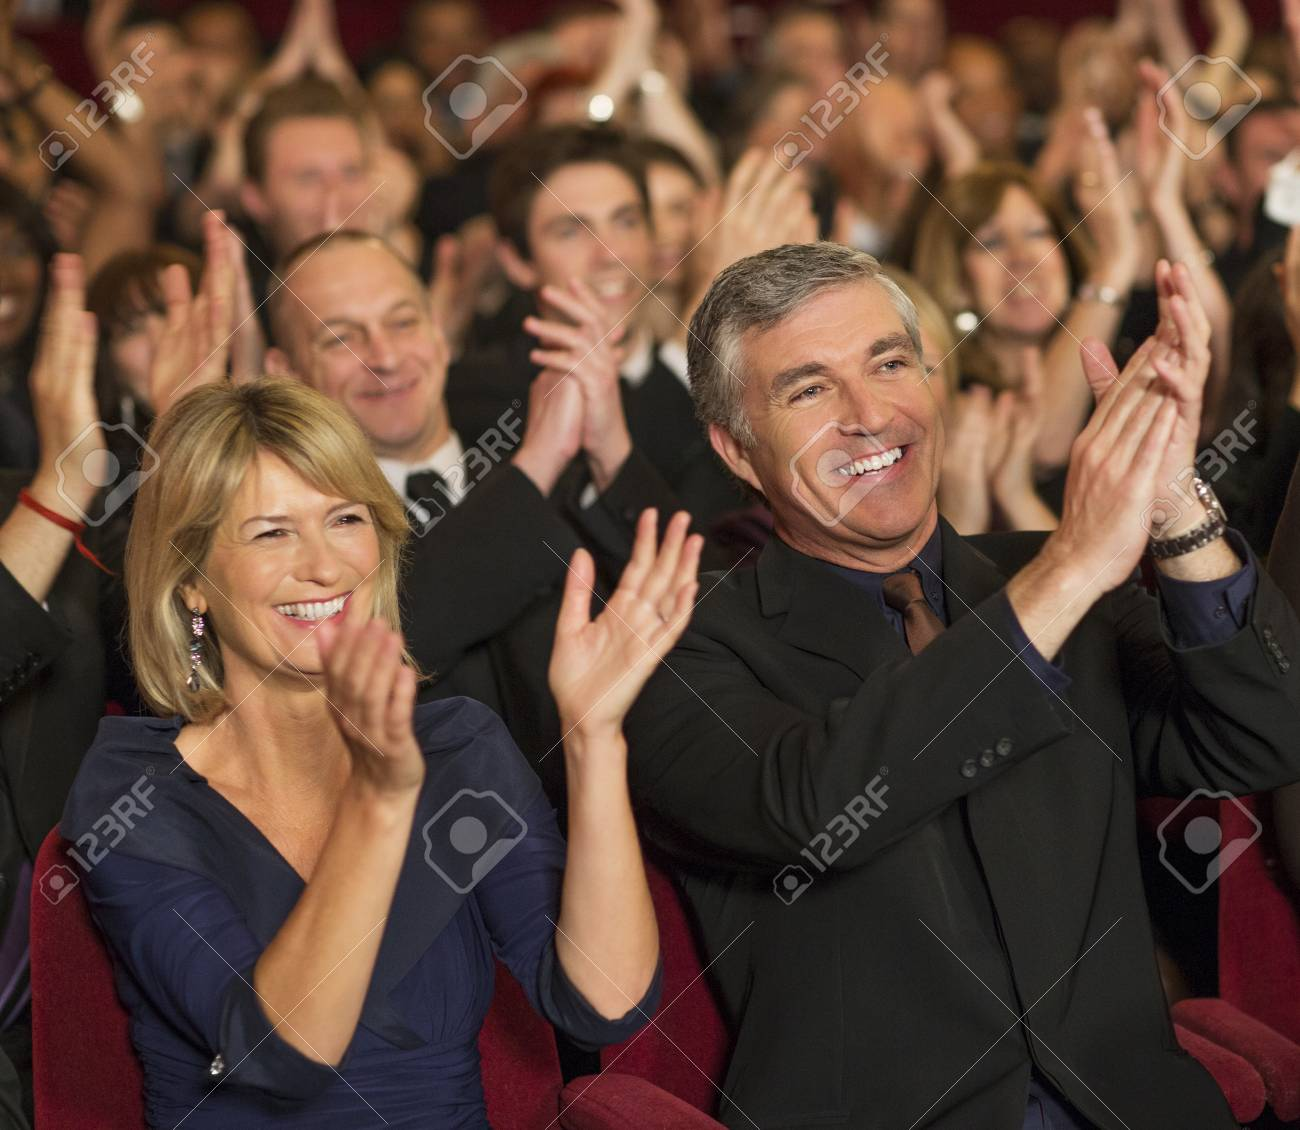 enthusiastic theater audience clapping stock photo picture and